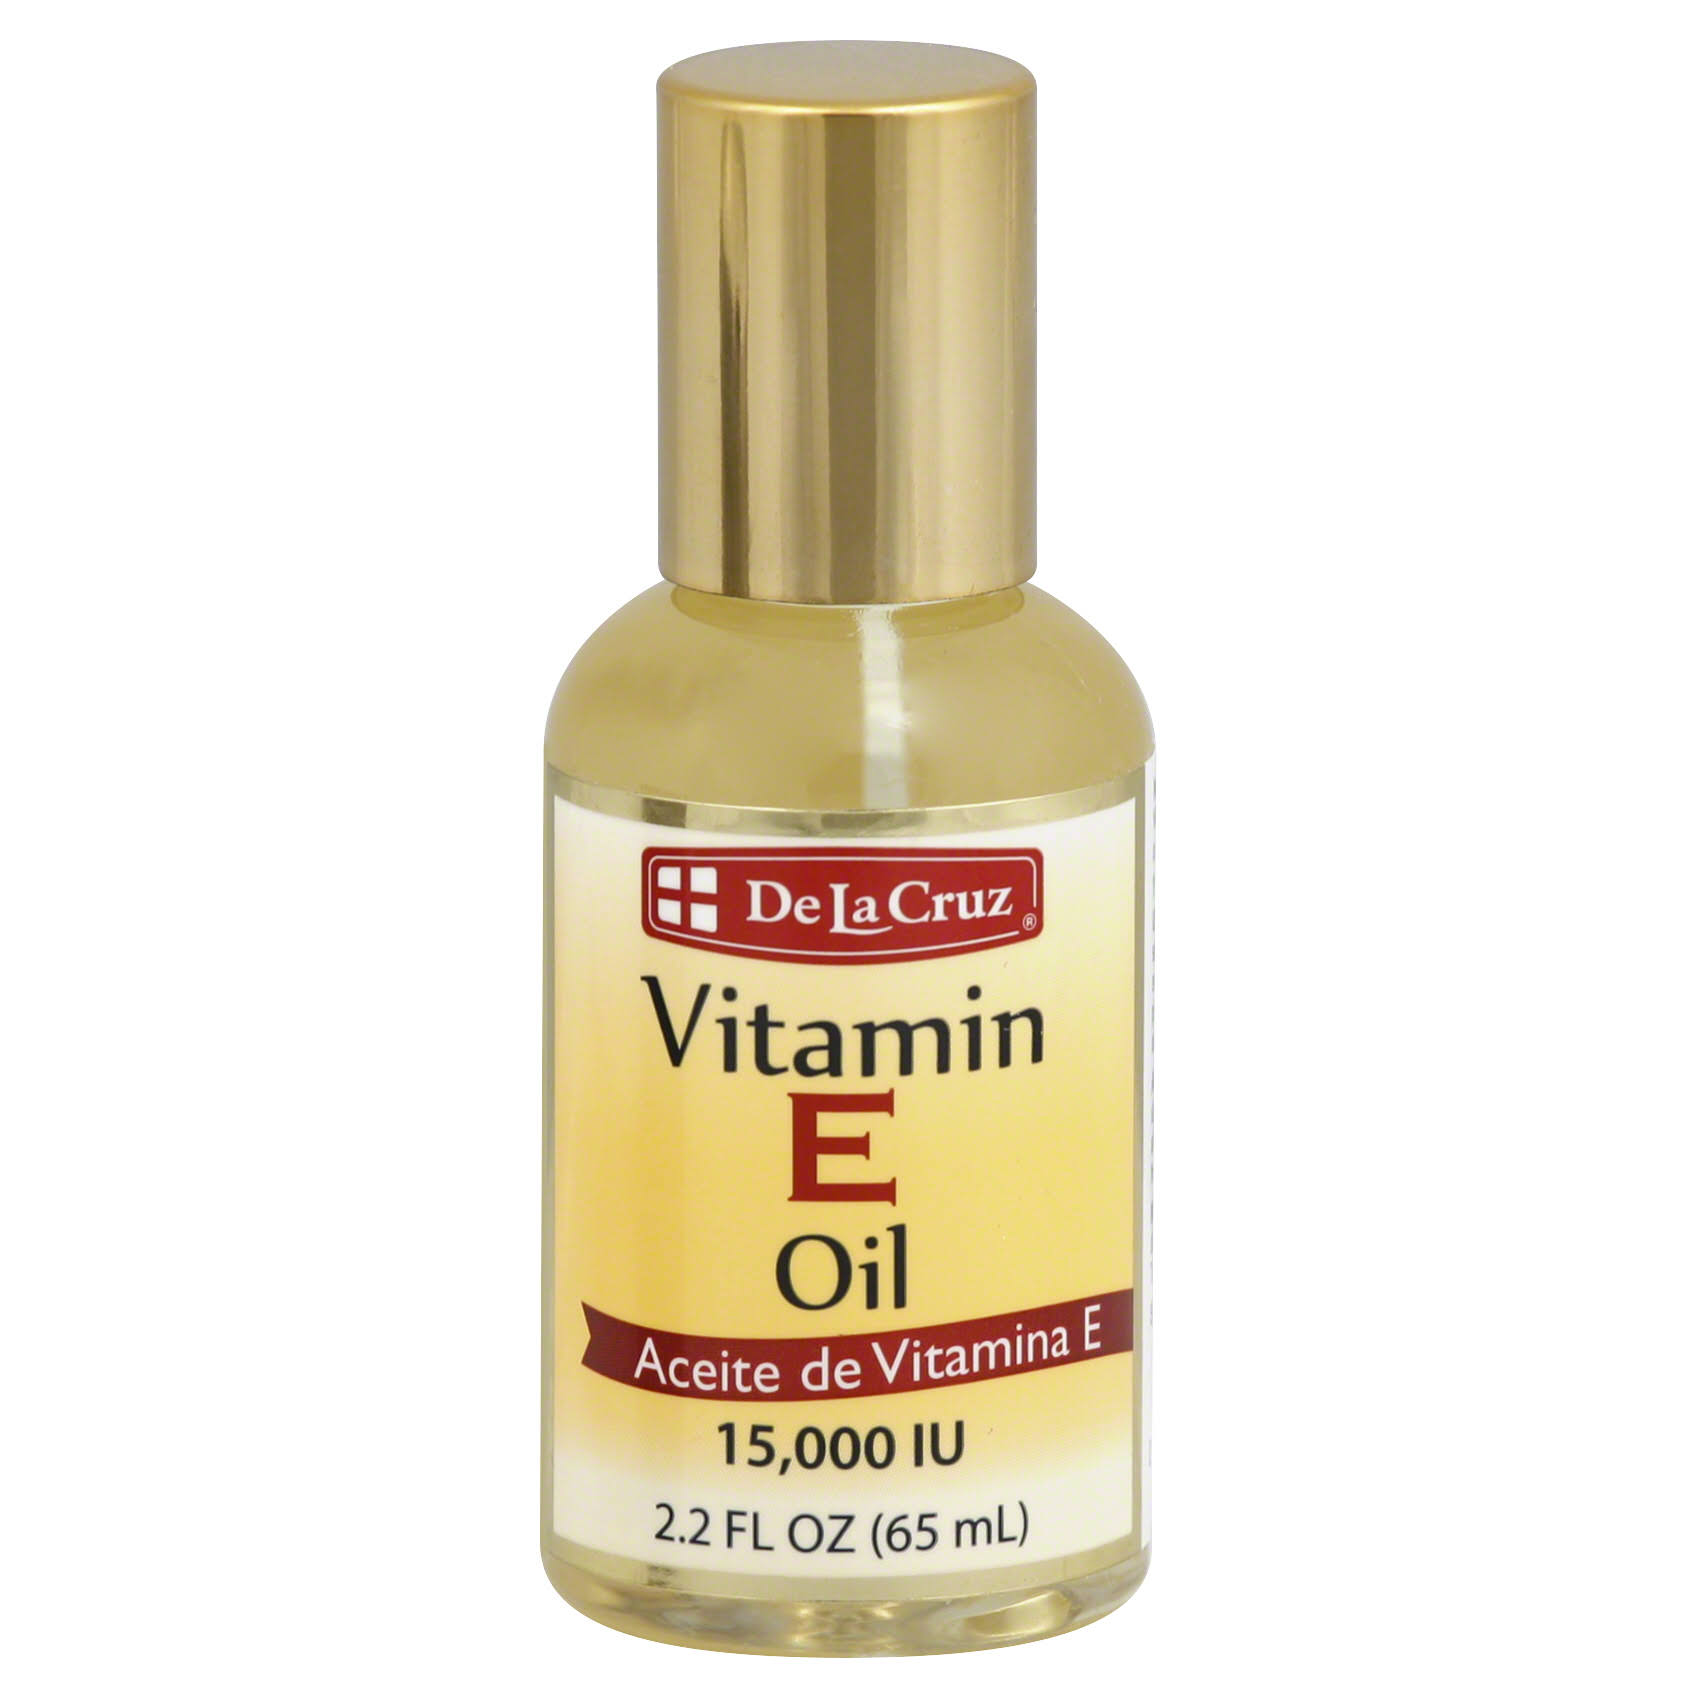 De La Cruz Vitamin E Oil - 2.2oz